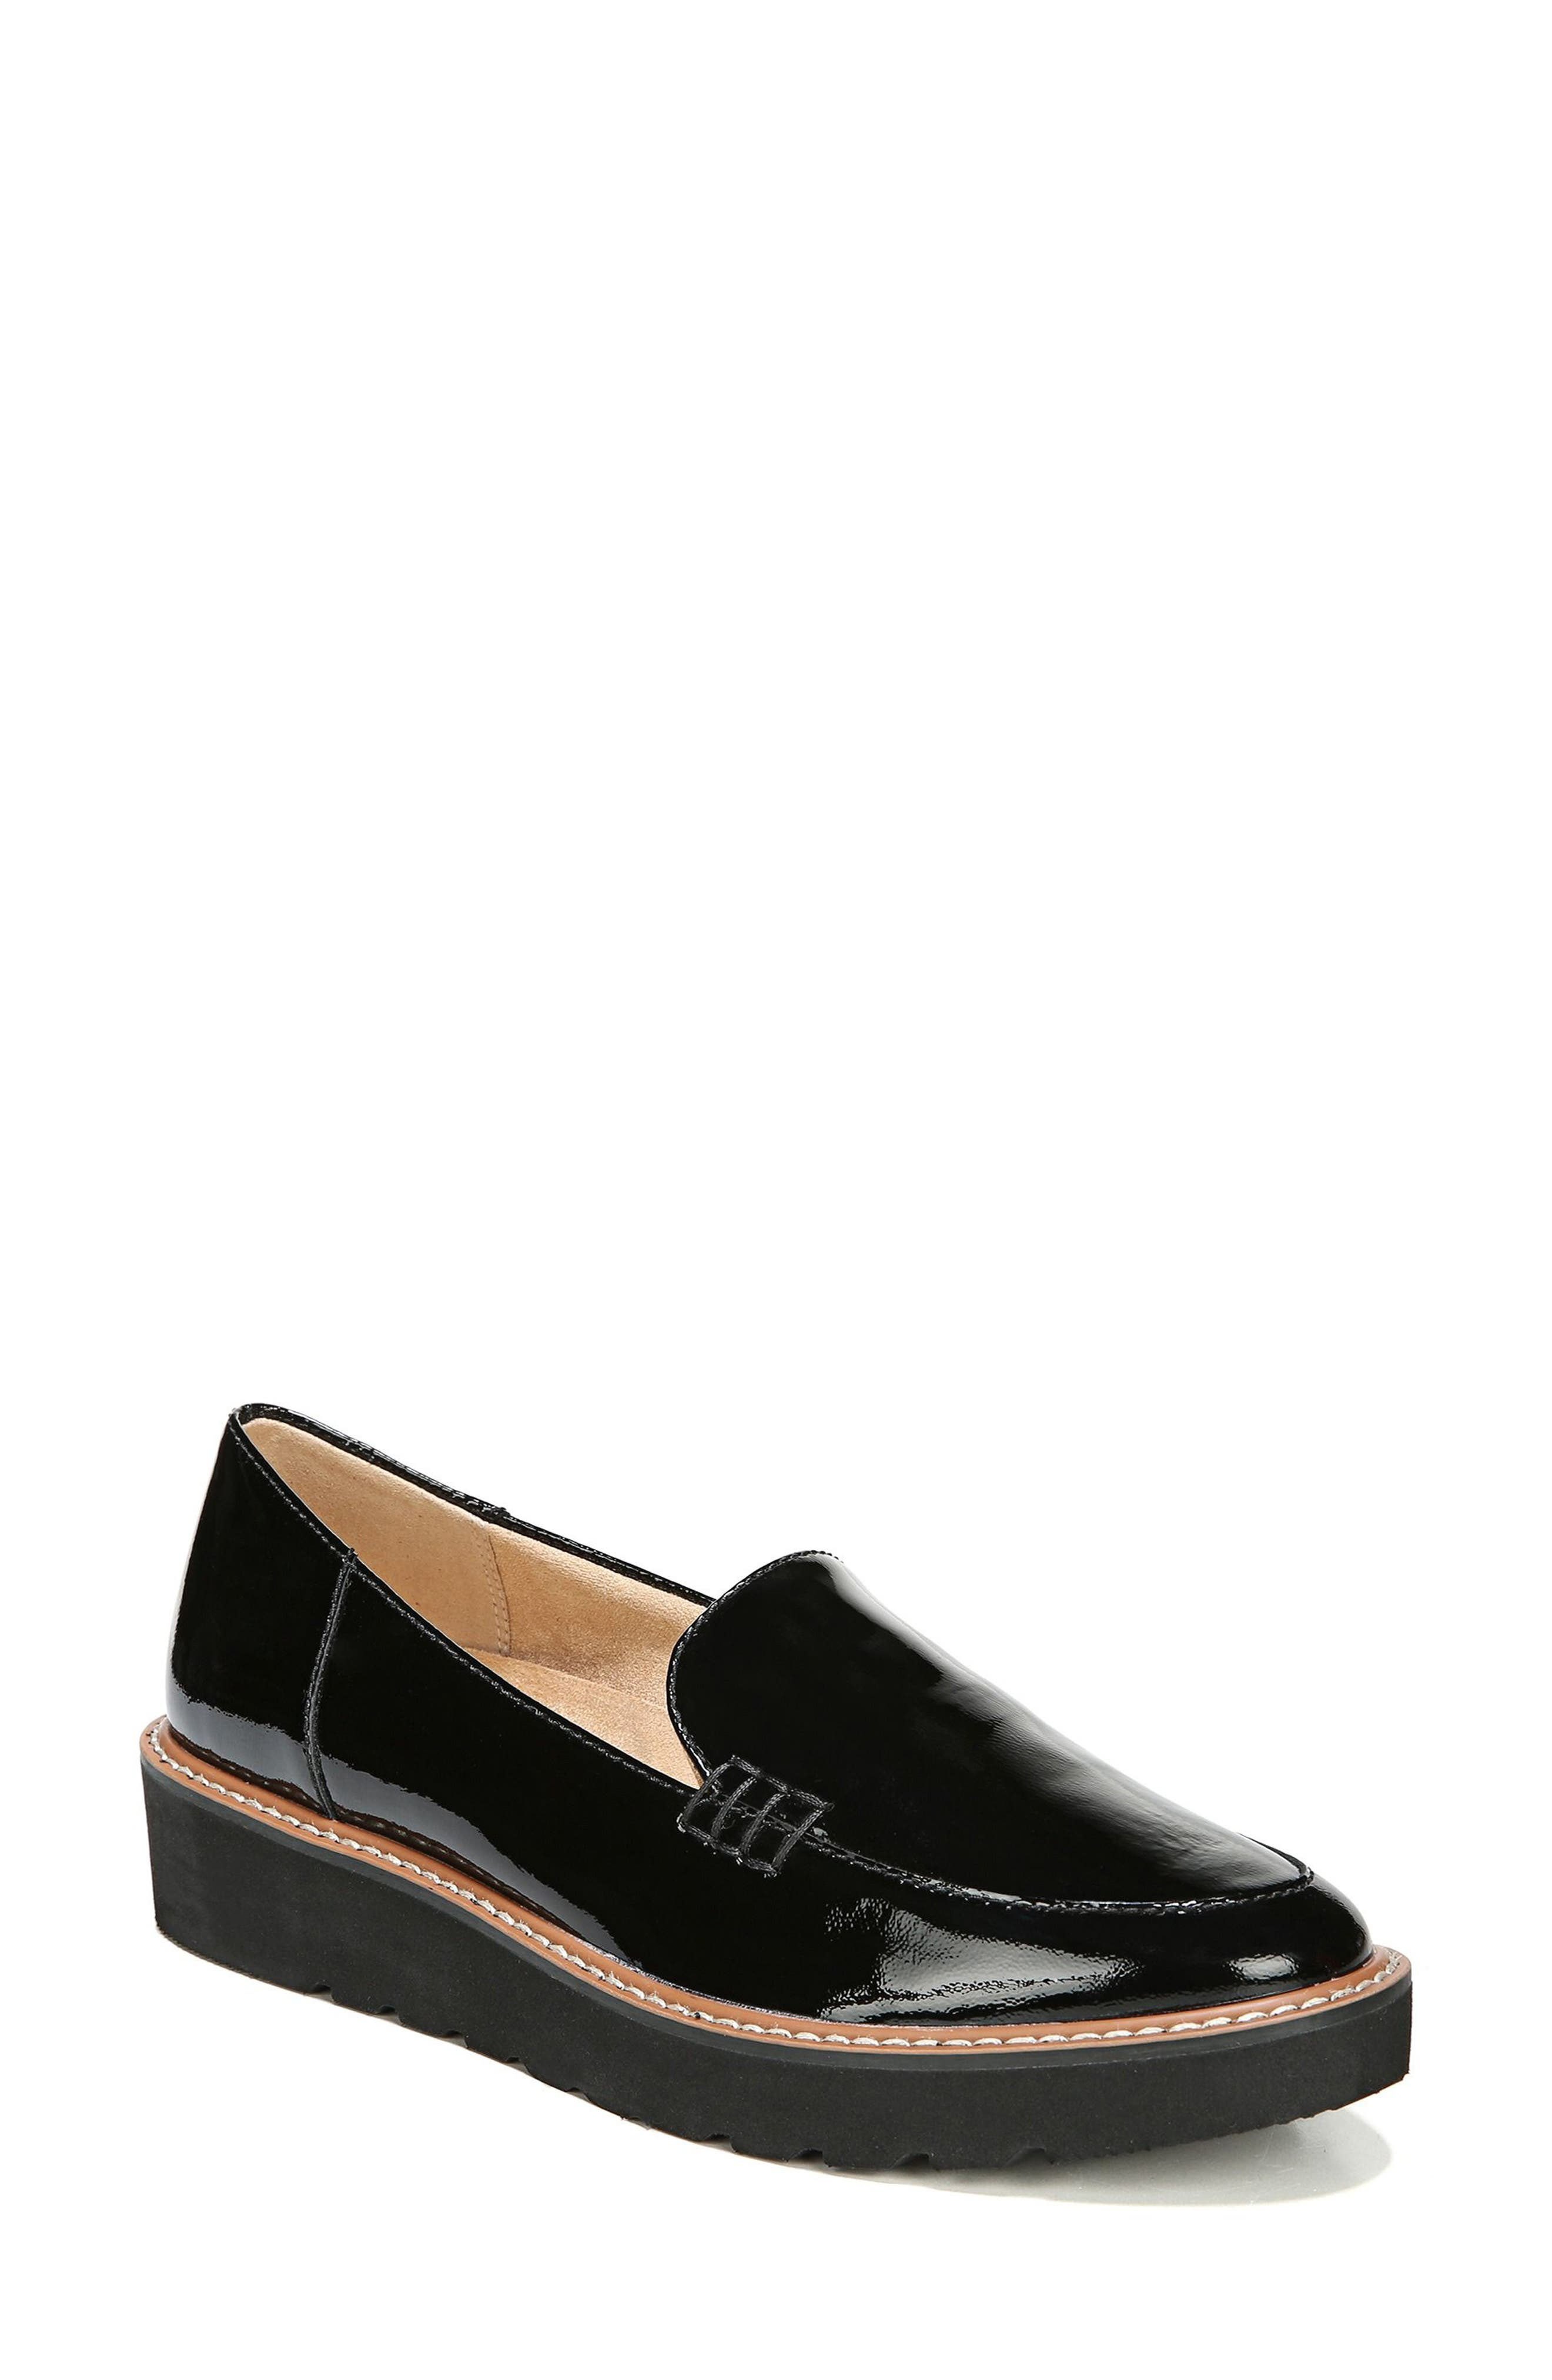 Andie Loafer,                         Main,                         color, BLACK PATENT